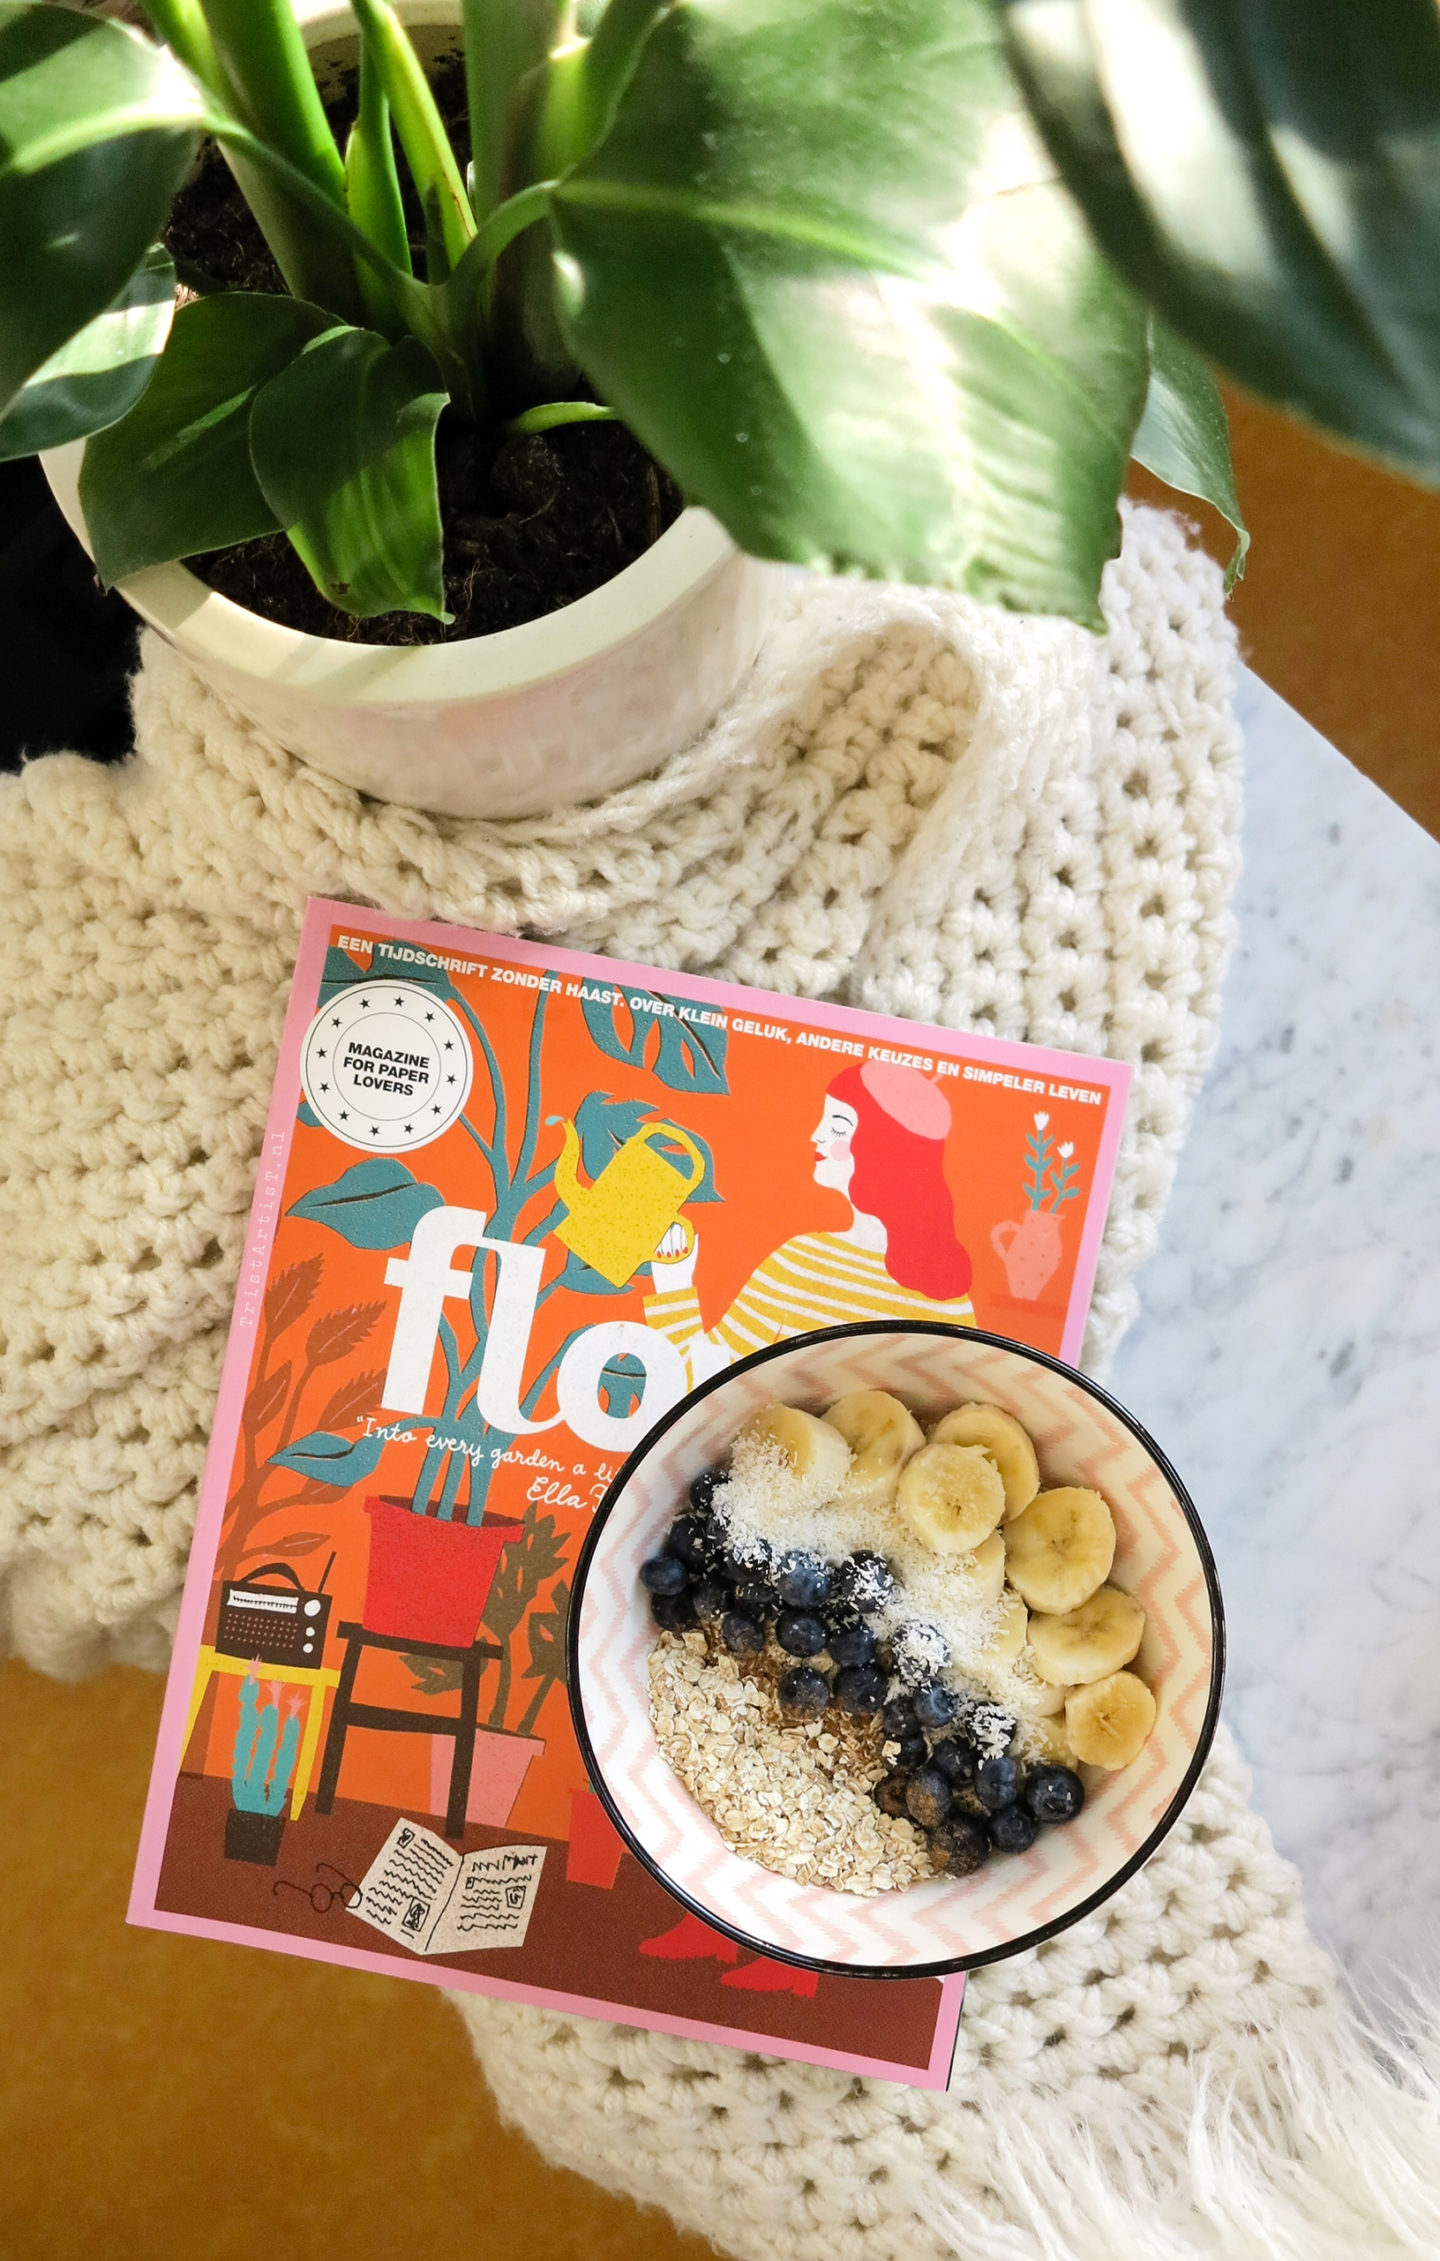 VEGAN FRIDAY – My favorite breakfast